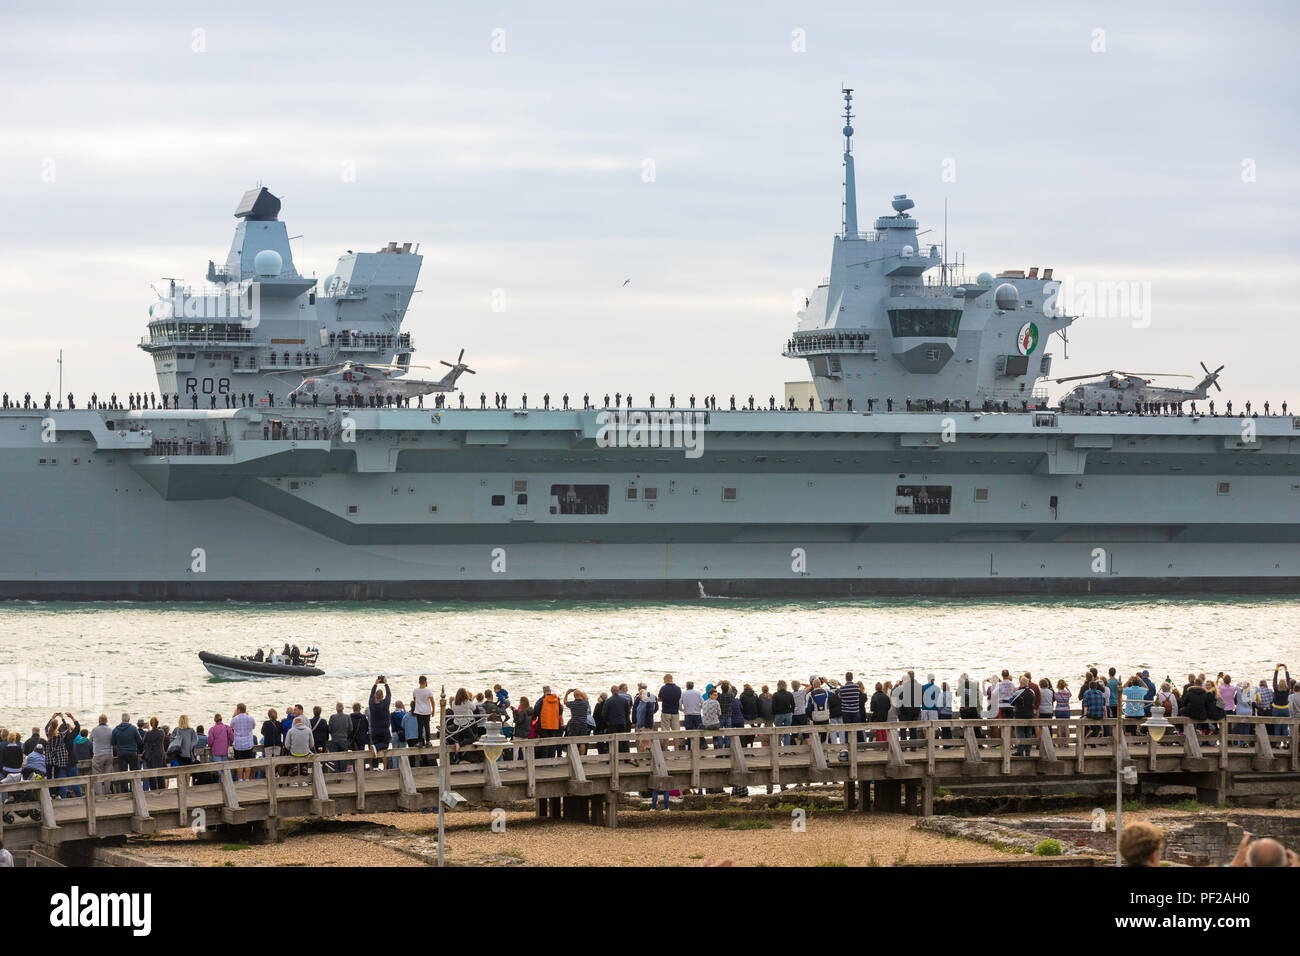 The Royal Navy's newest and largest ever warship, HMS Queen Elizabeth leaves Portsmouth this evening for sea trials in the North Atlantic. - Stock Image